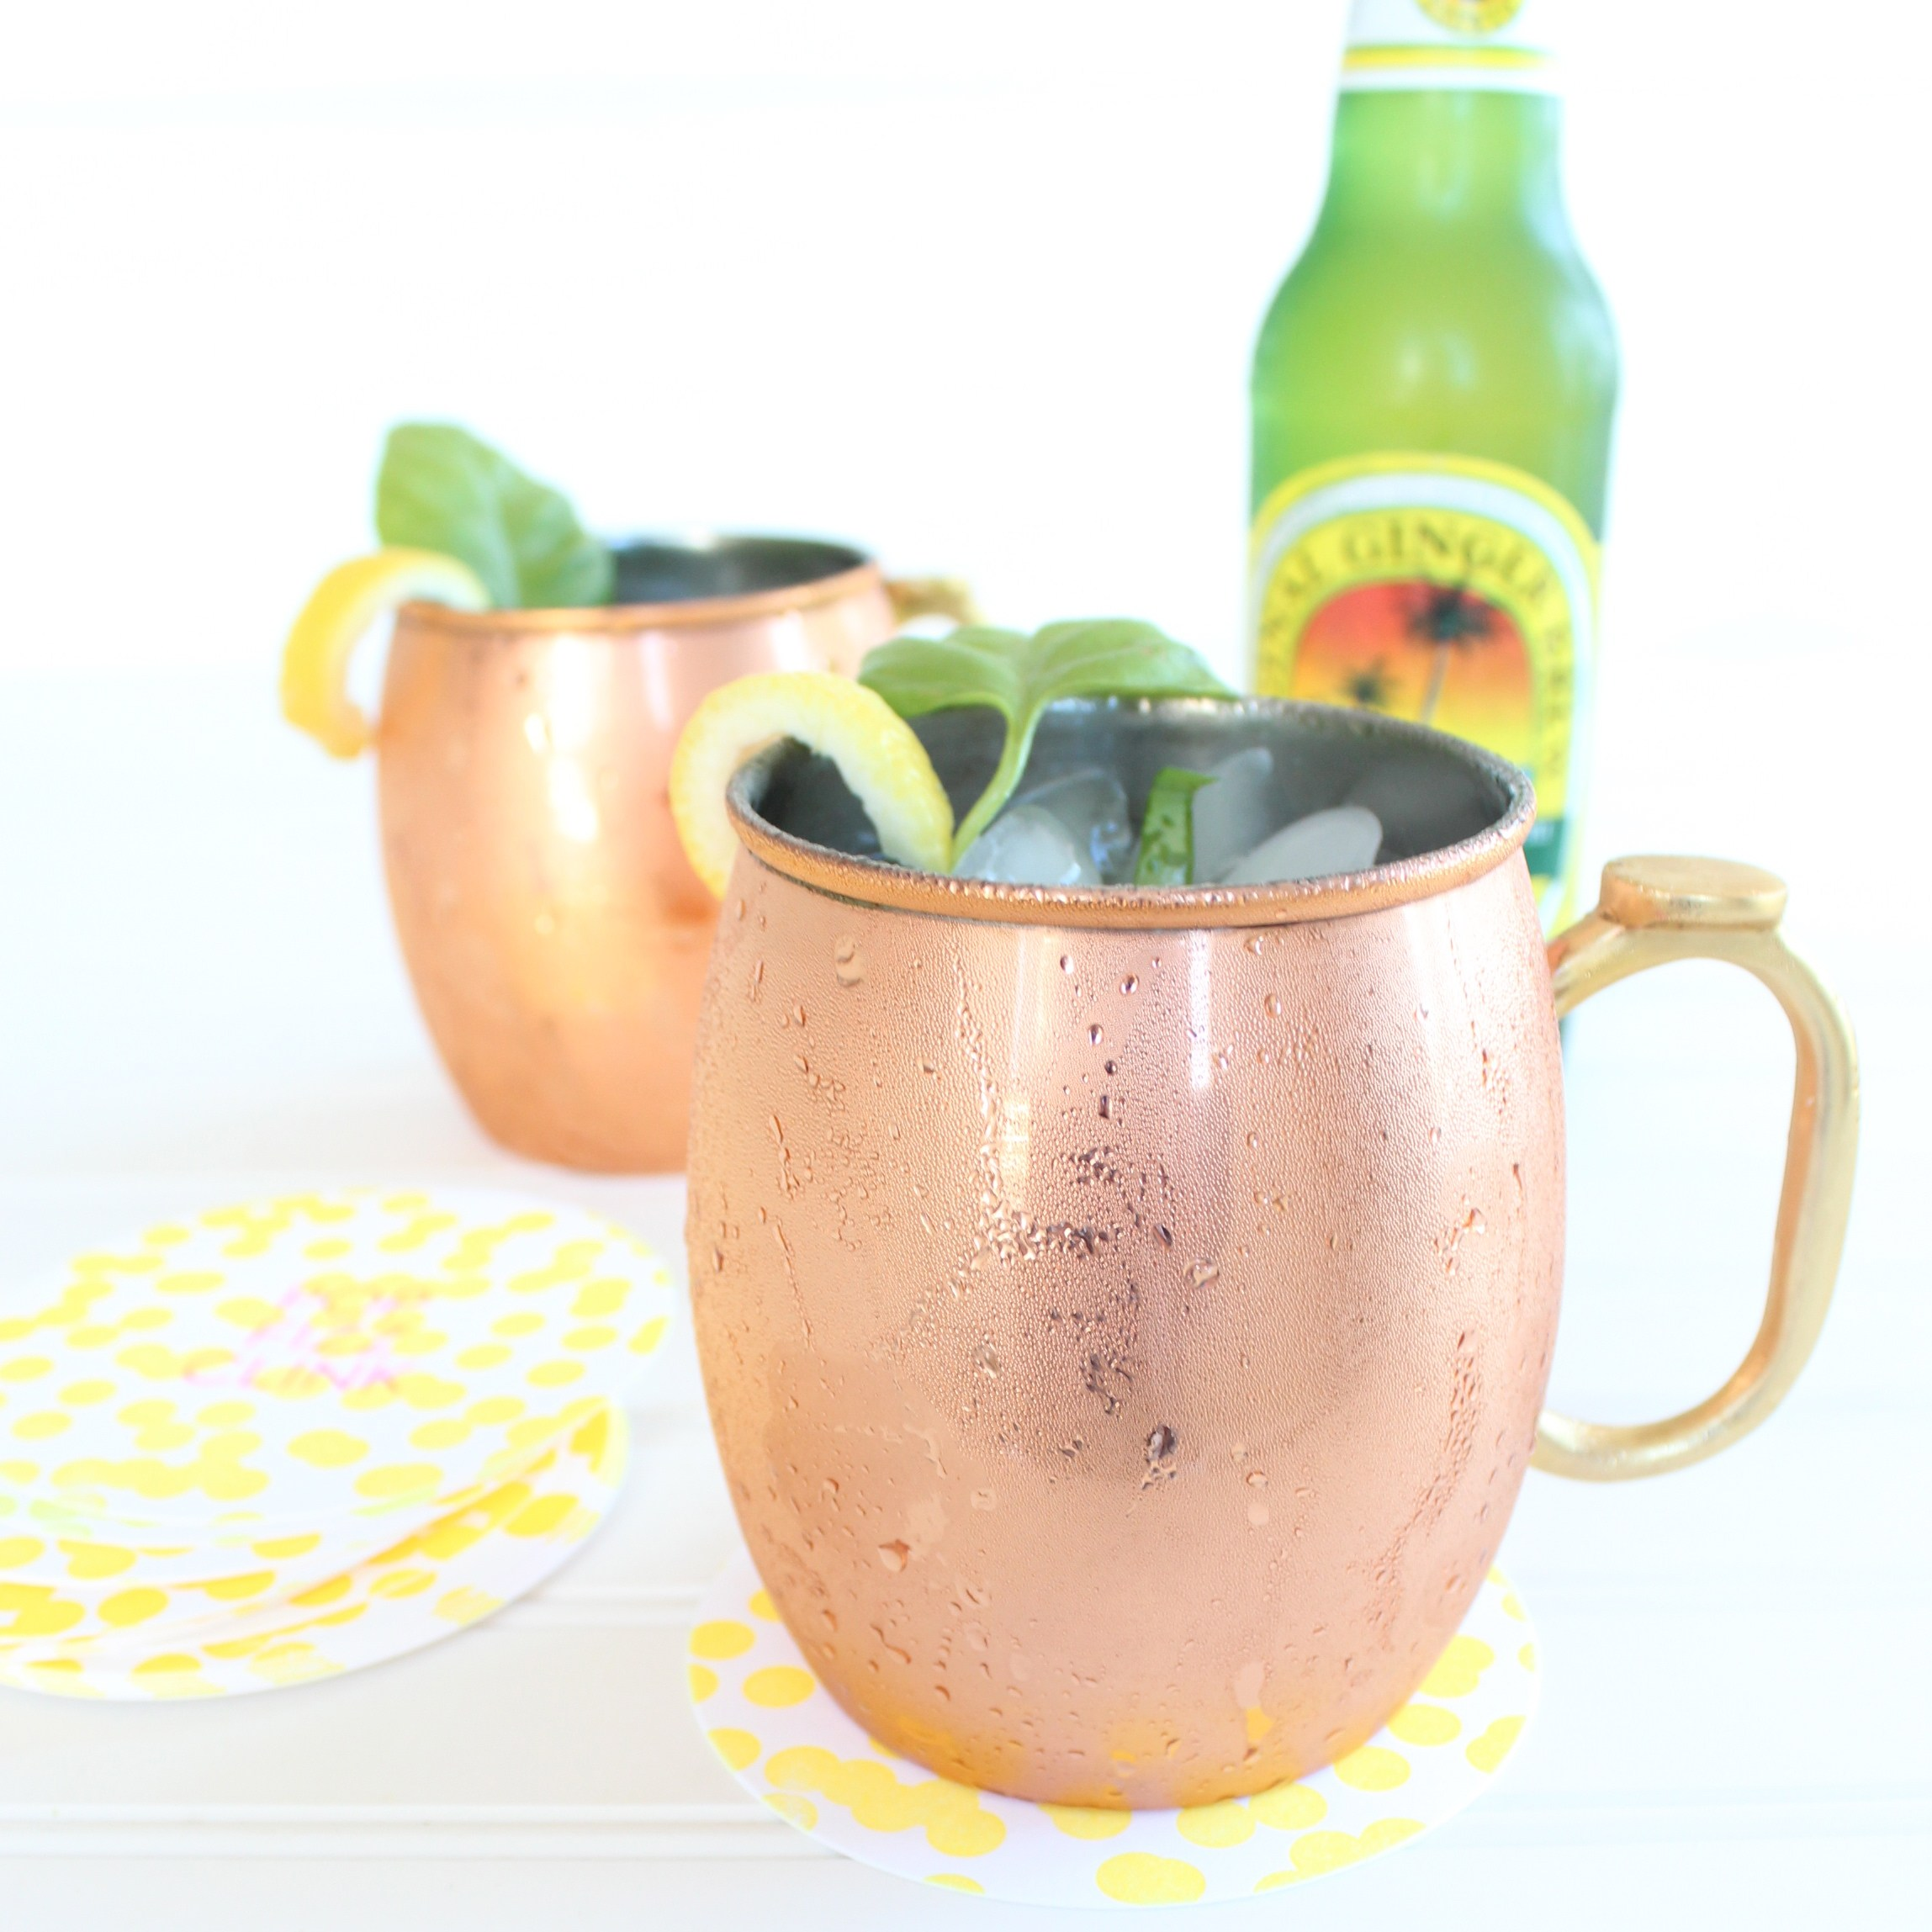 Peach basil Moscow mule recipe